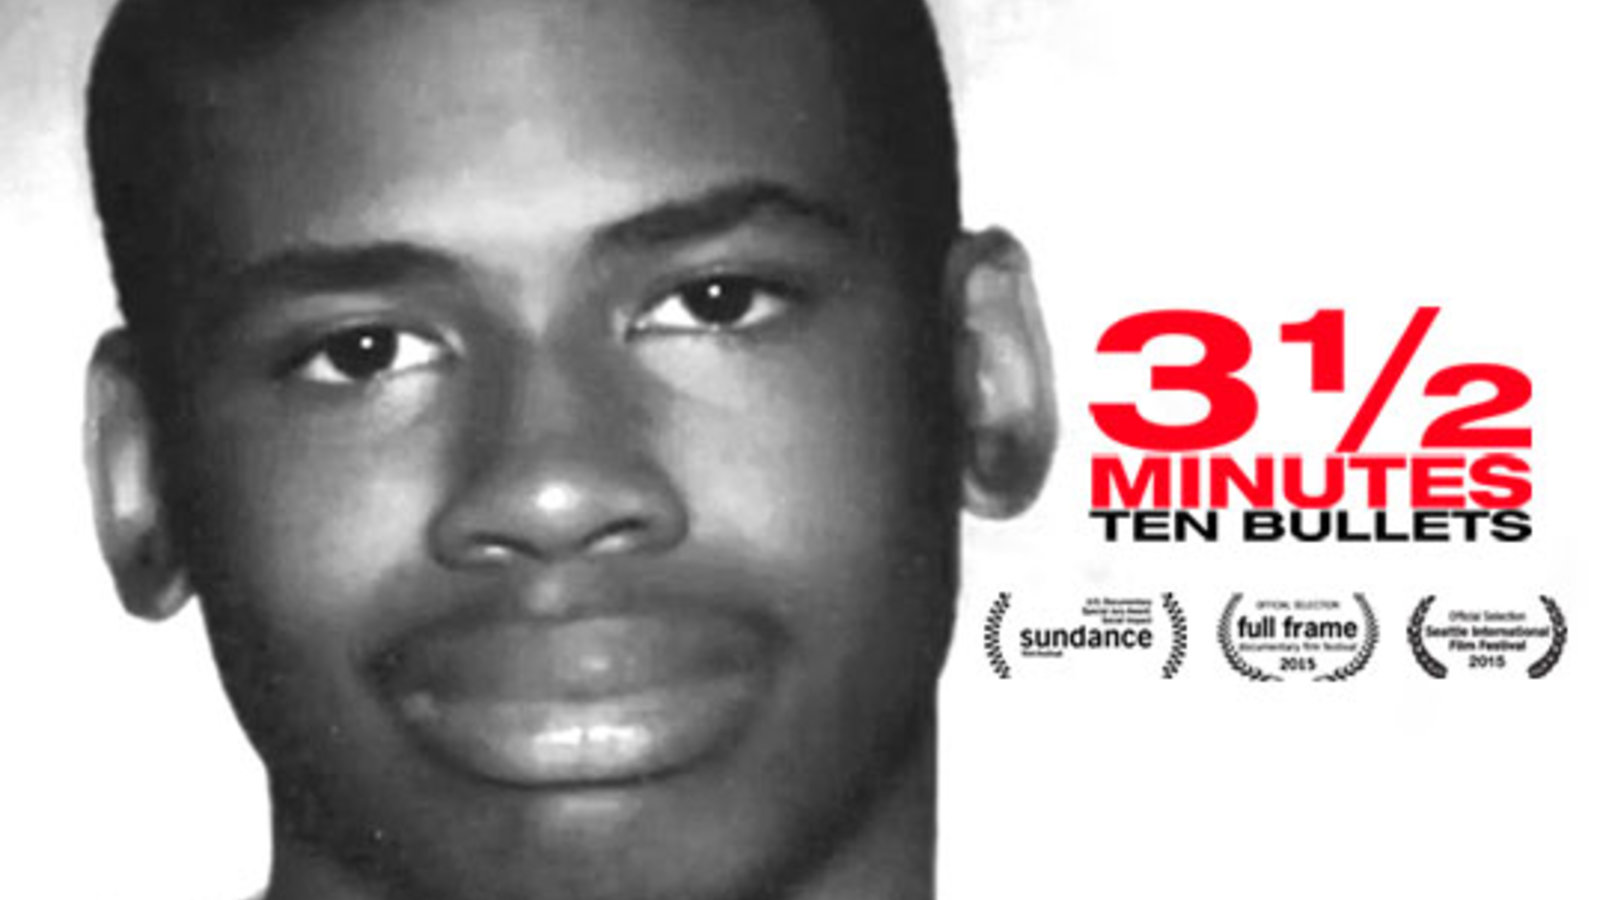 3 1/2 Minutes, 10 Bullets - Racial Bias and the American Justice System